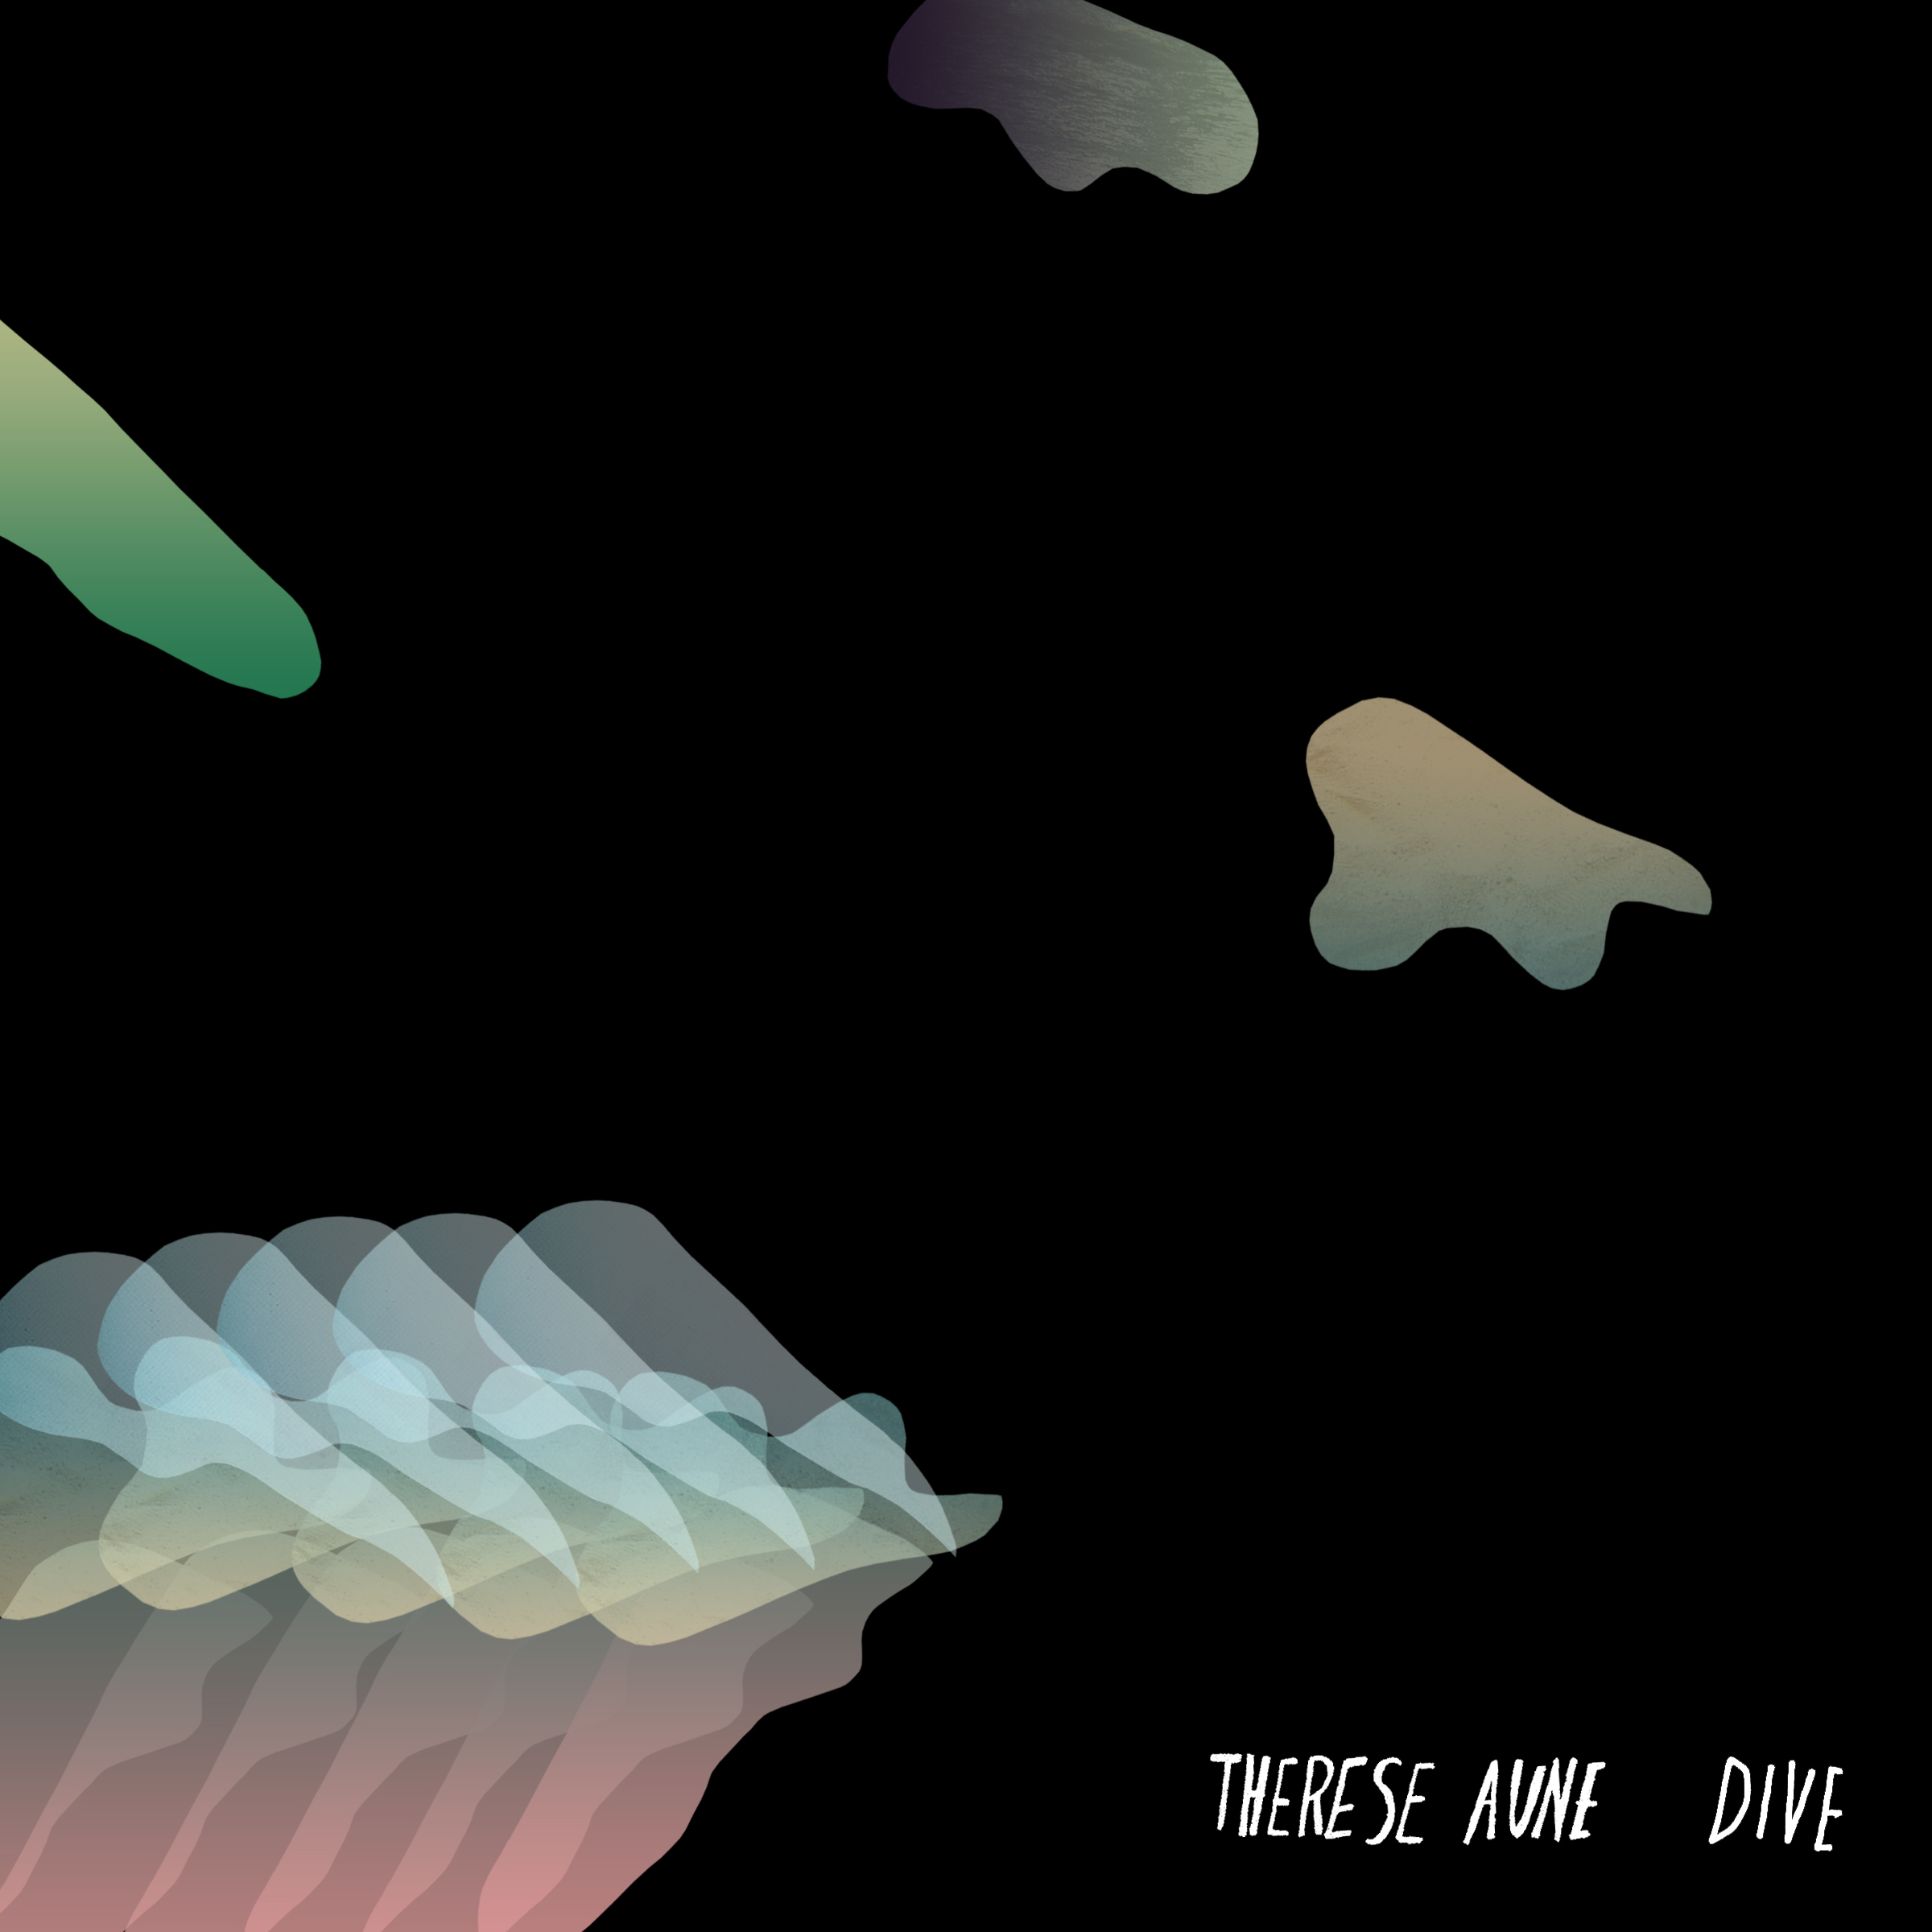 Cover for Dive (single, 2015)